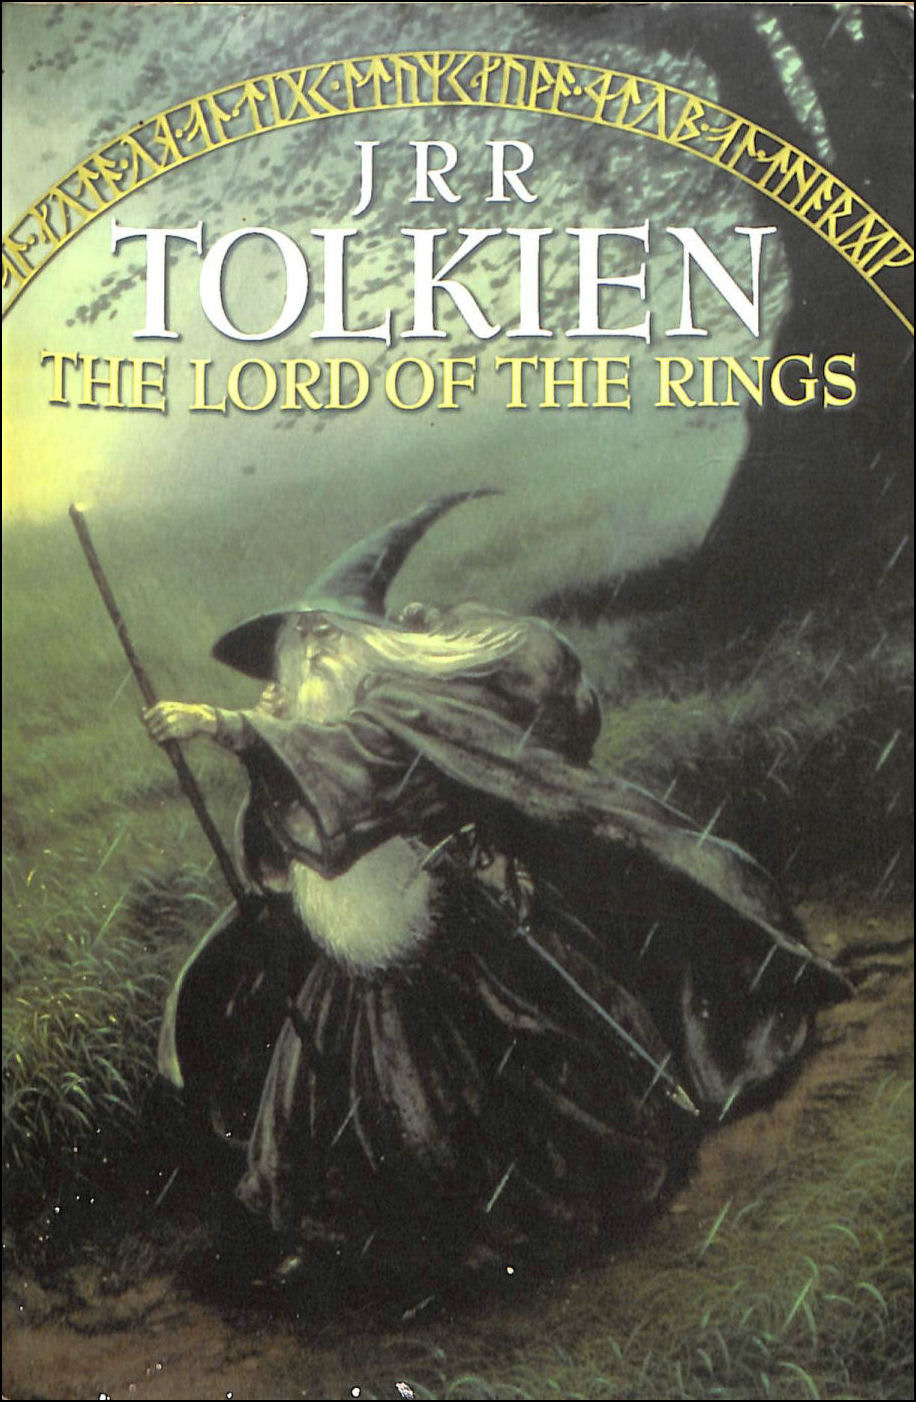 The Lord of The Rings, Tolkien, J. R. R.